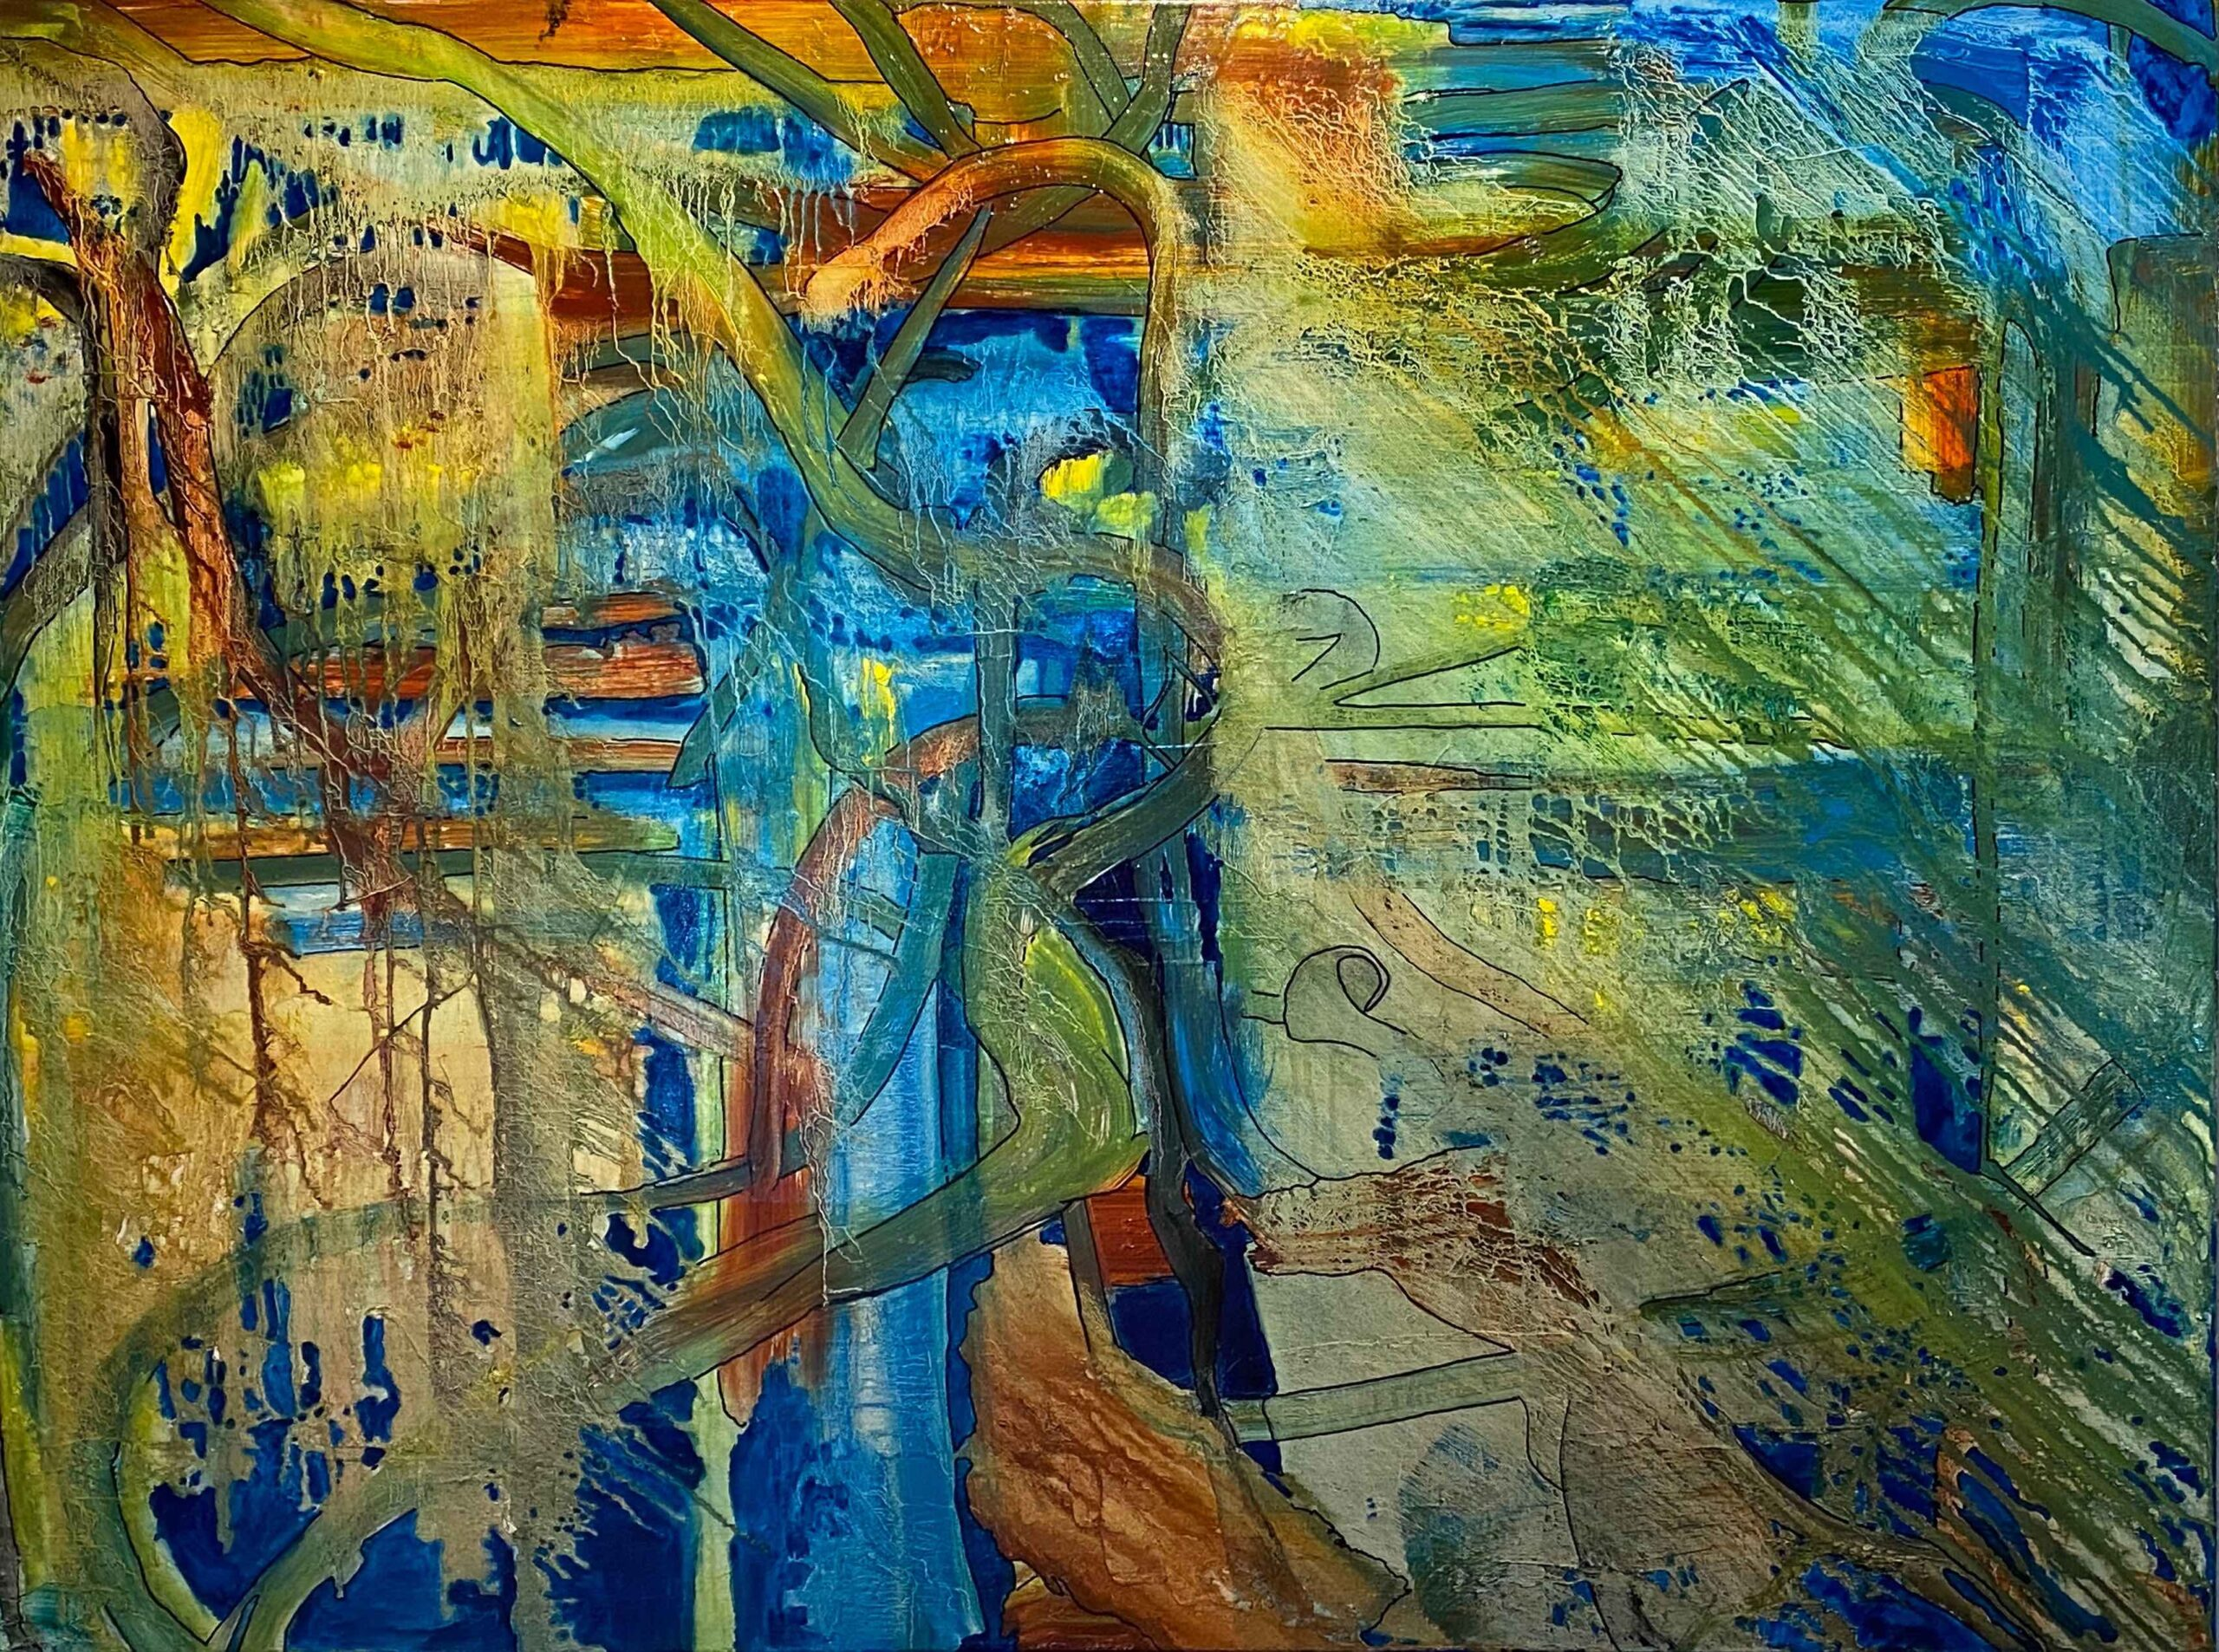 """David Alge, Passing through, Oil, marker on canvas, 30""""x40"""", $650"""